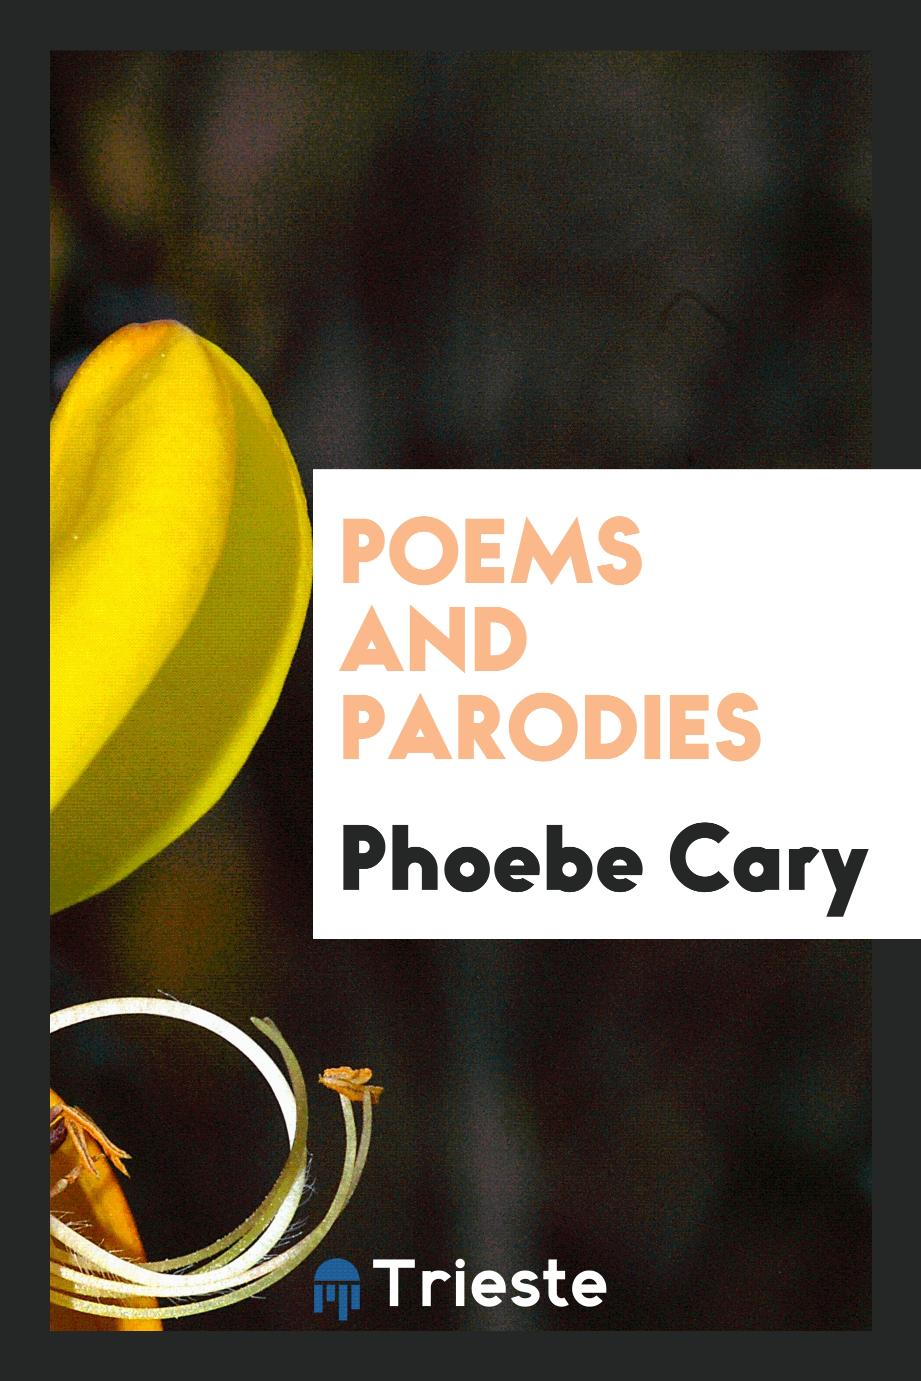 Poems and parodies